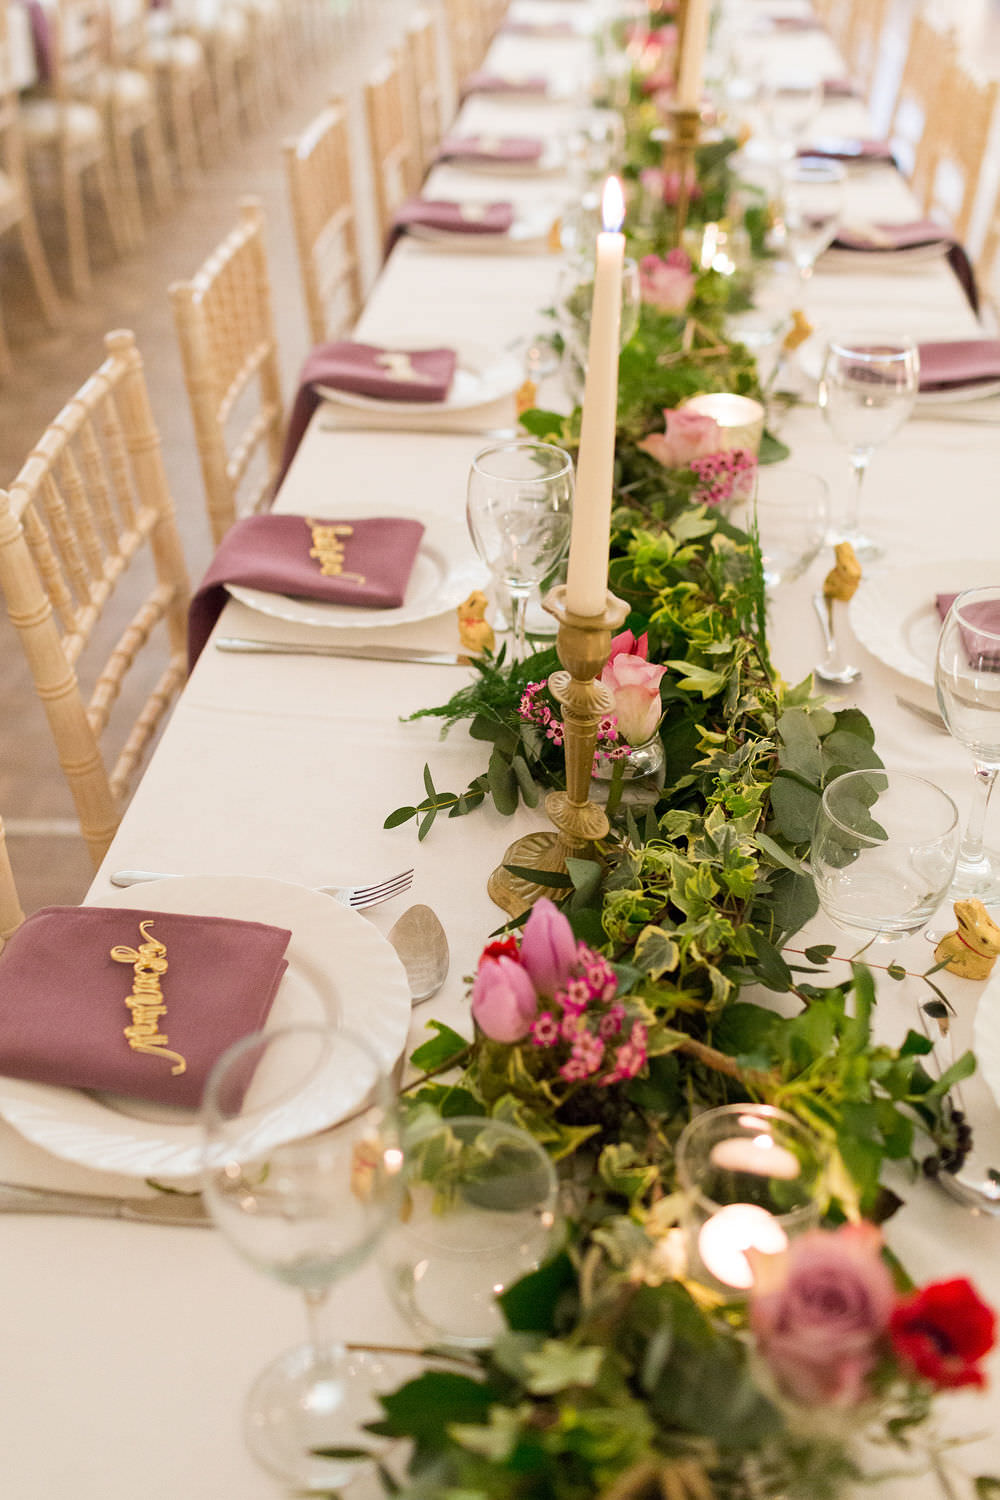 Marquee Foliage Greenery Runner Swag Table Pink Flowers Candles Napkins Place Setting Names Highcliffe Castle Wedding Bowtie and Belle Photography